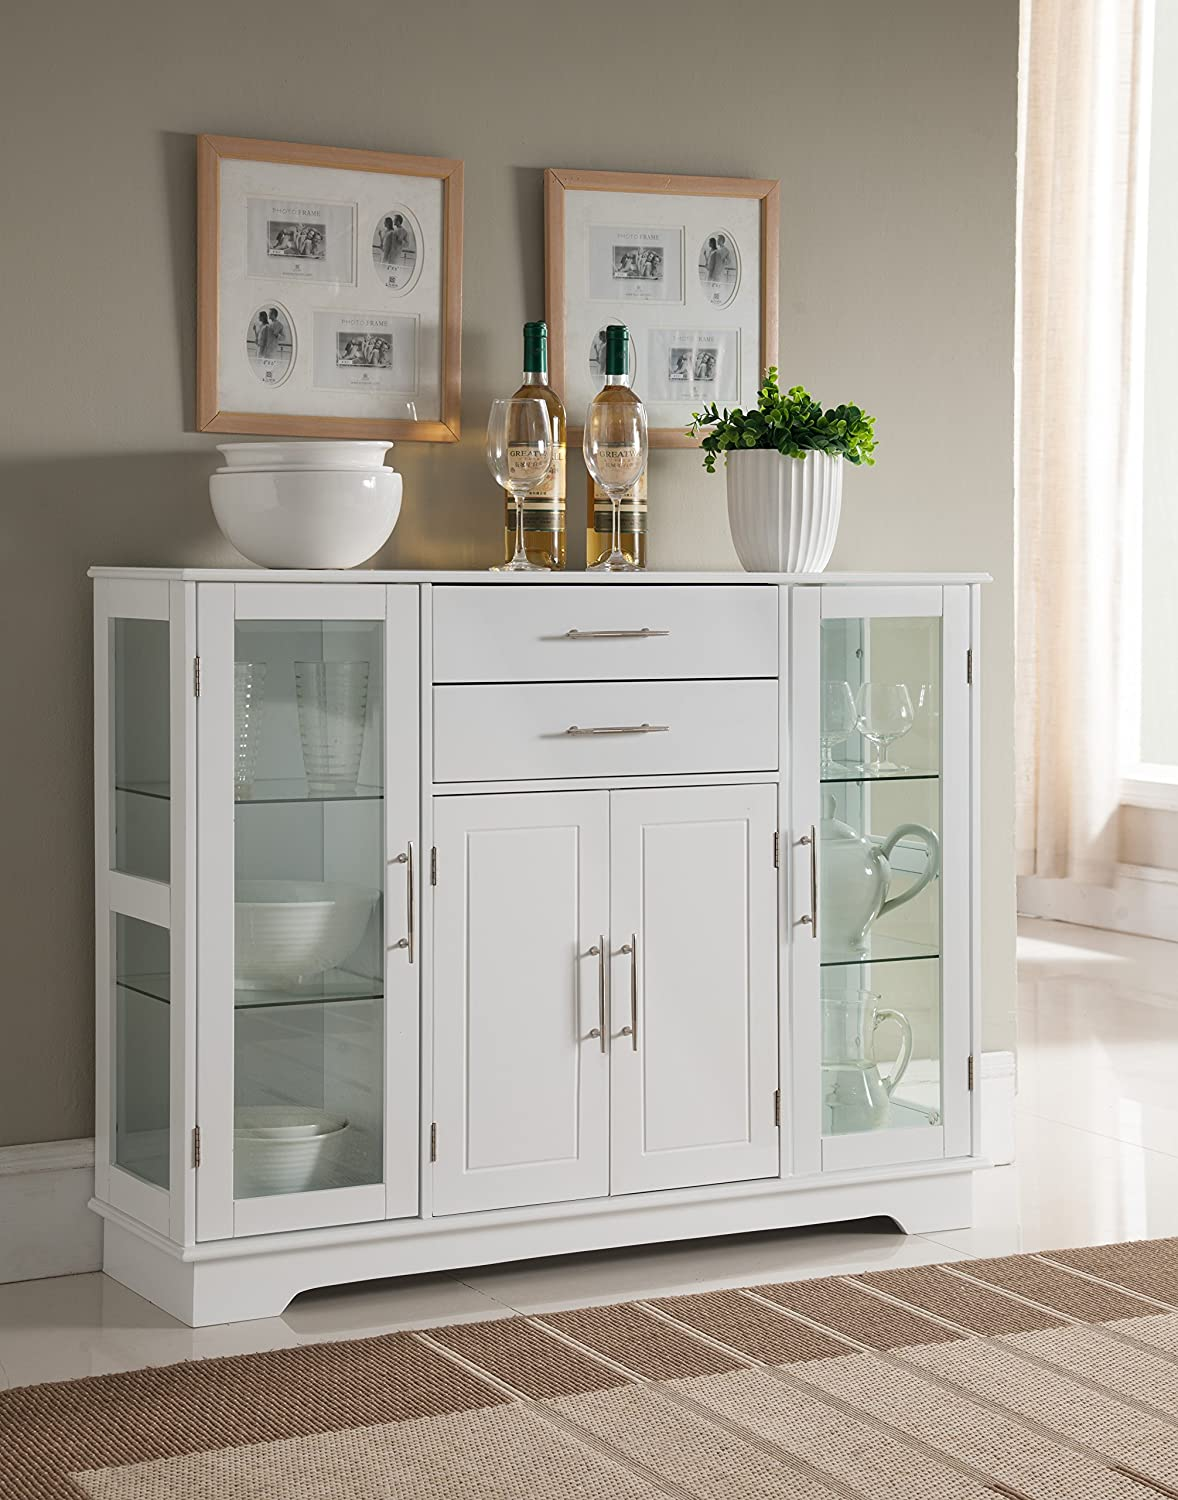 Kings Brand Kitchen Storage Cabinet Buffet With Glass Doors - White